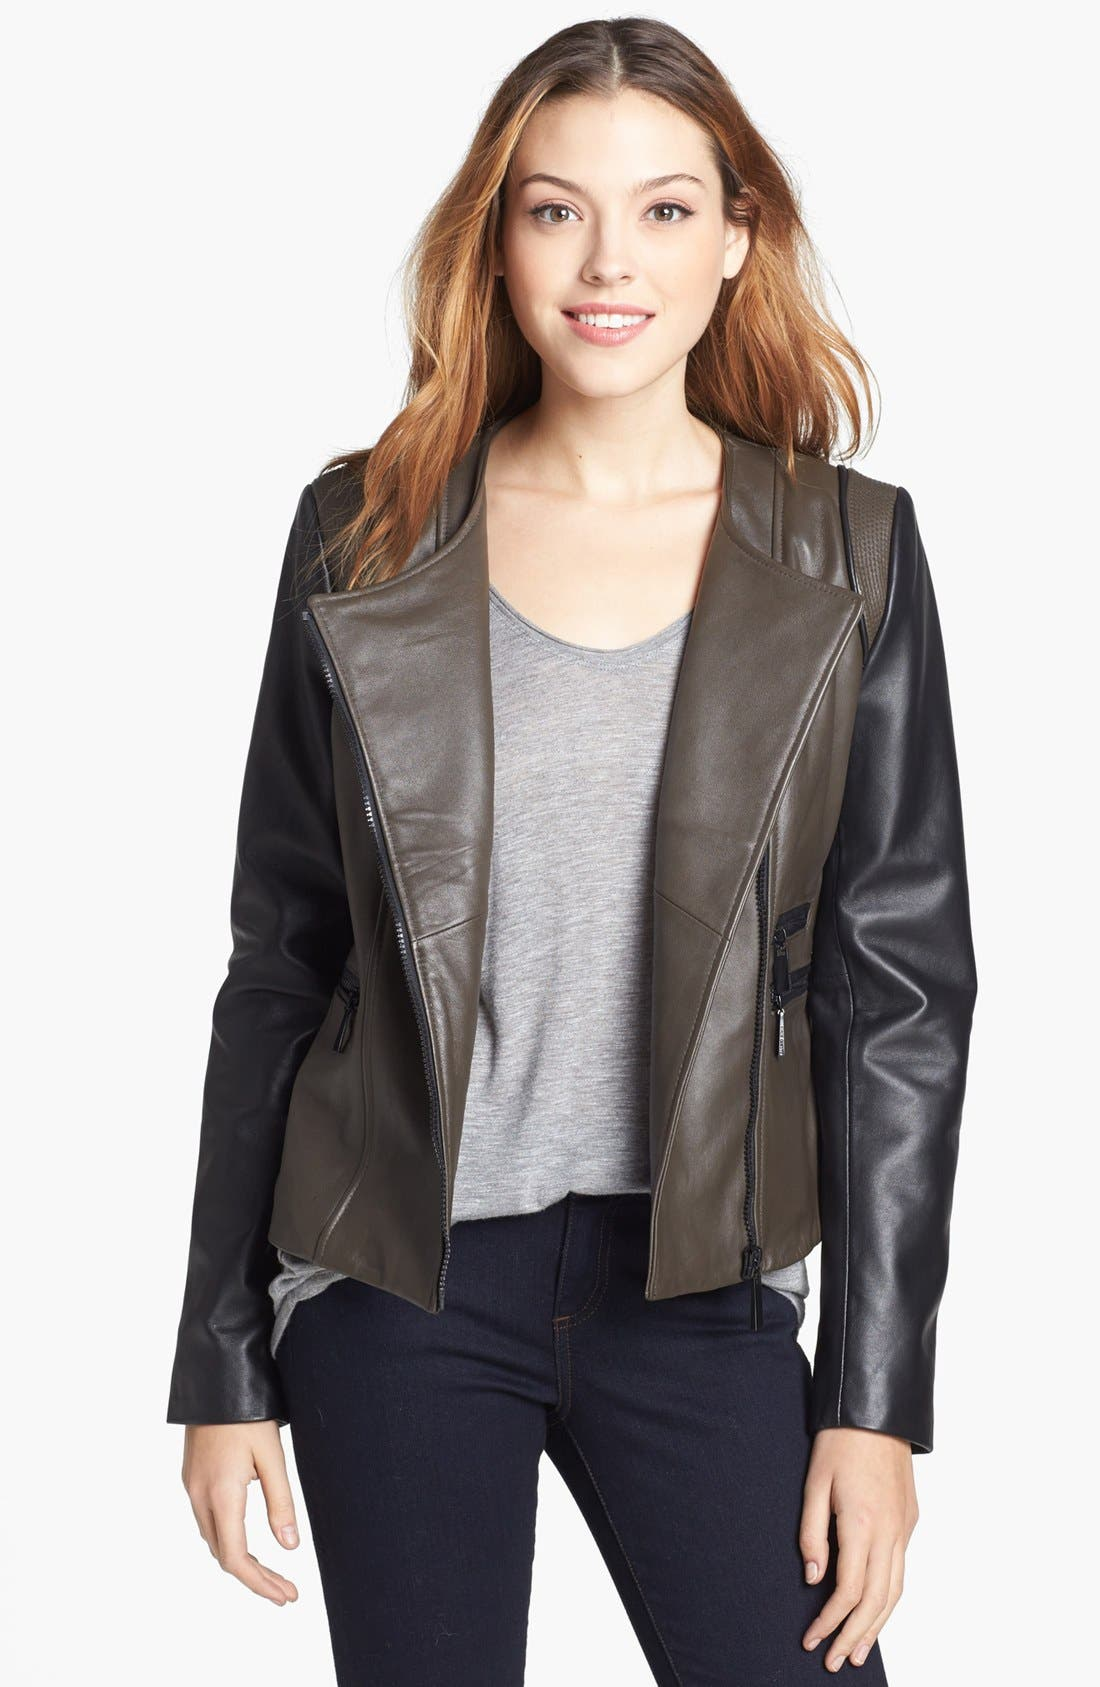 Alternate Image 1 Selected - Vince Camuto Two-Tone Collarless Leather Moto Jacket (Online Only)